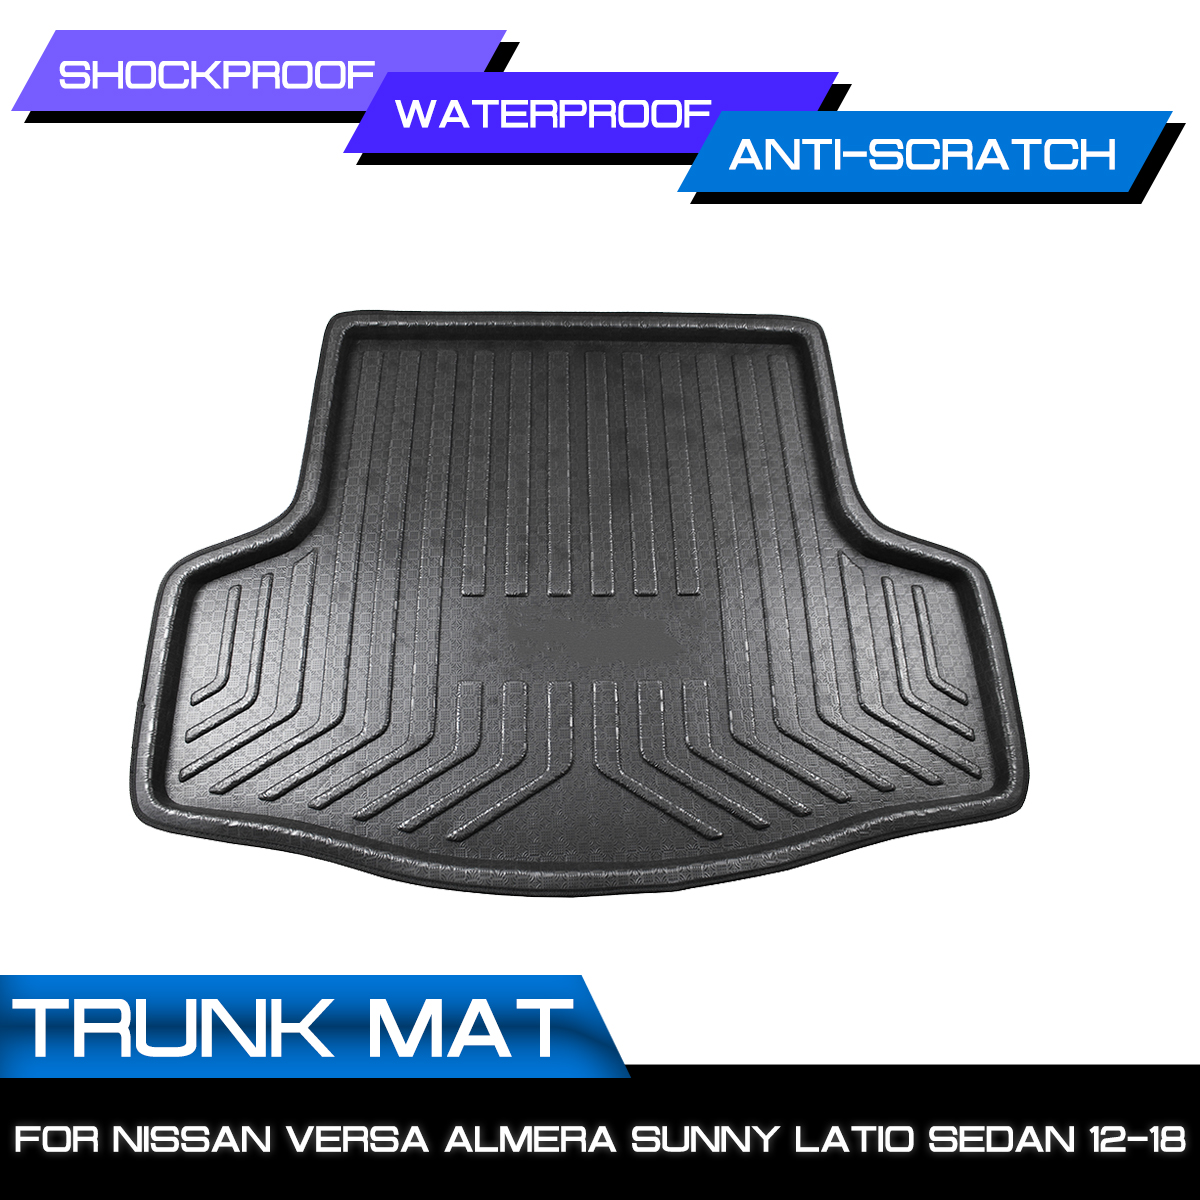 Car Rear Trunk Boot Waterproof Floor Mats Carpet Anti Mud Tray Cargo Liner For Nissan Versa Almera Sunny Latio Sedan 2012-2018